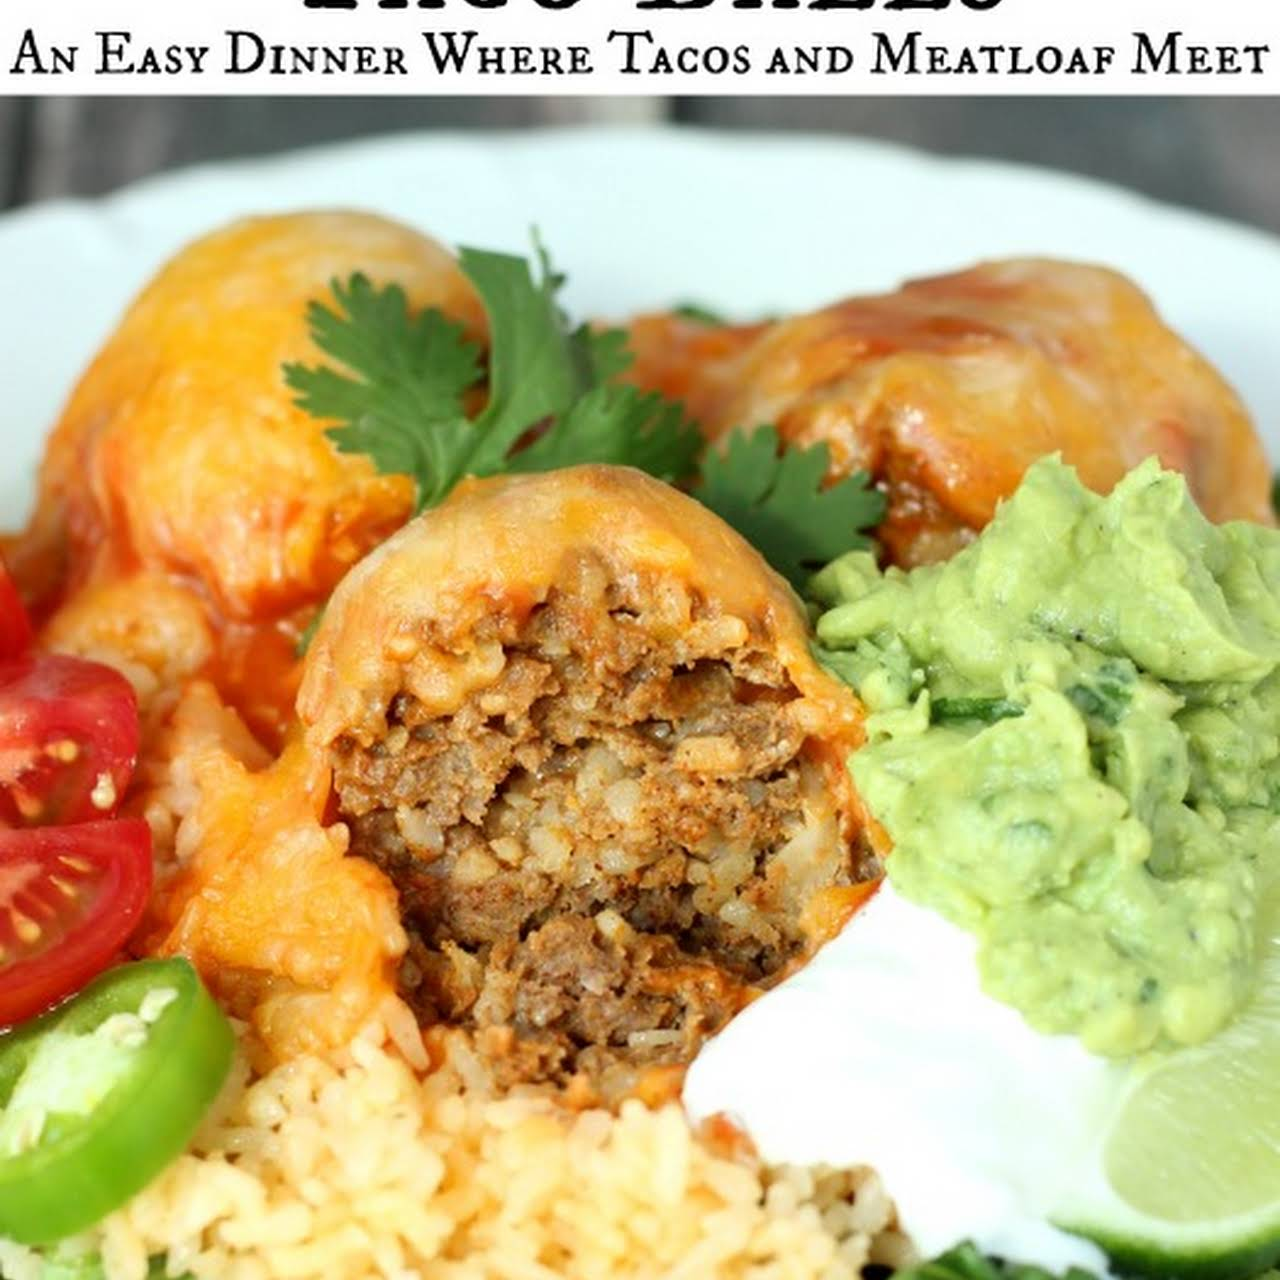 An Easy Dinner Where Tacos and Meatloaf Meet